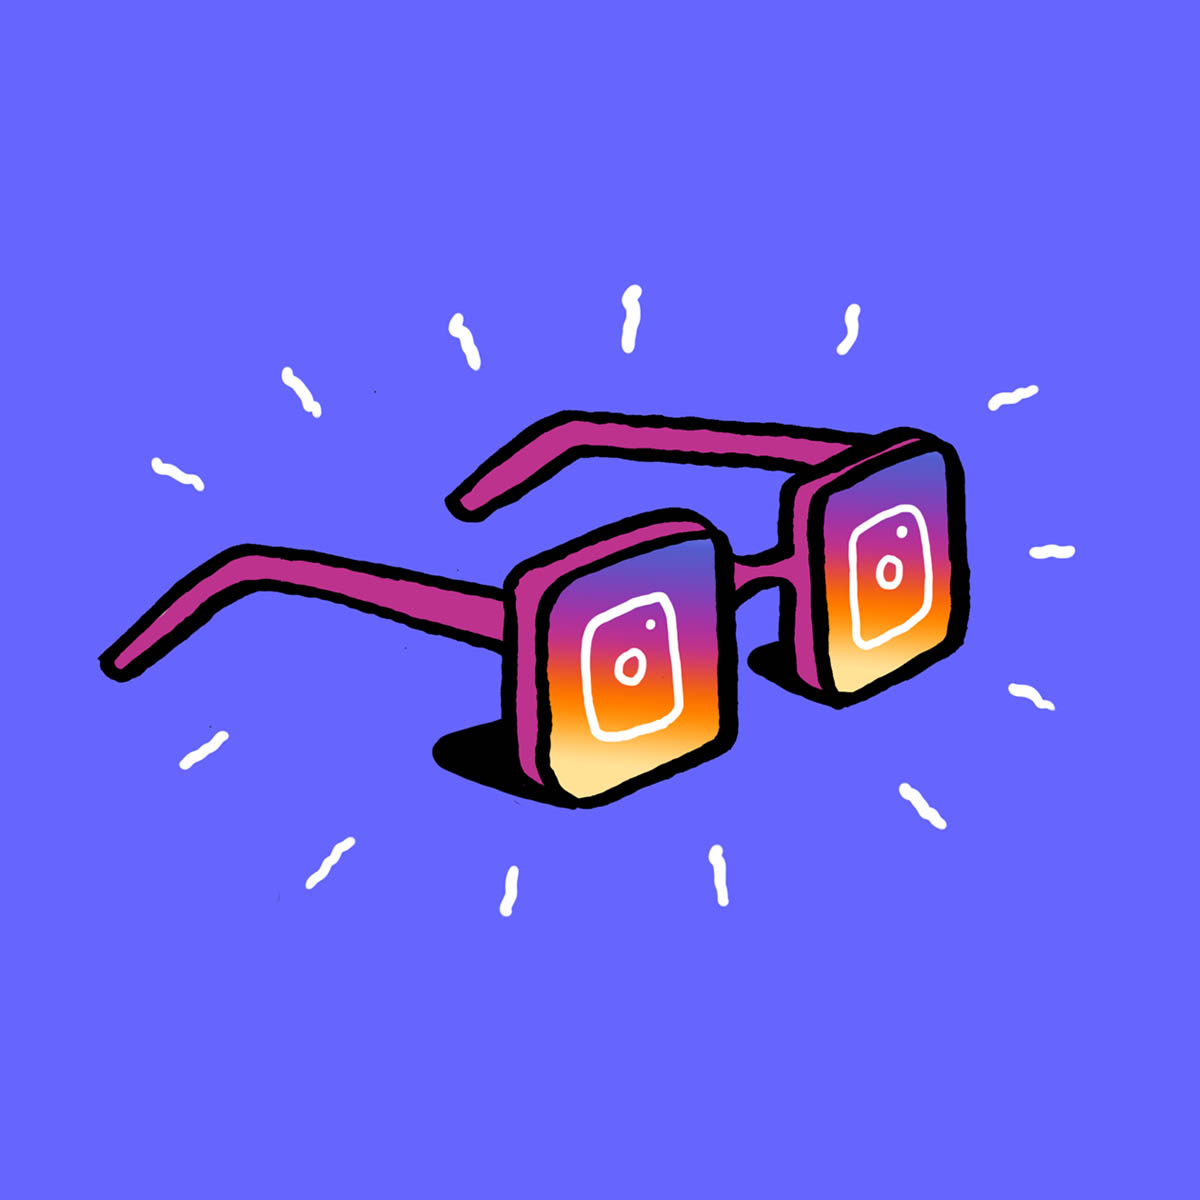 24 Instagram logo redesign THUMB